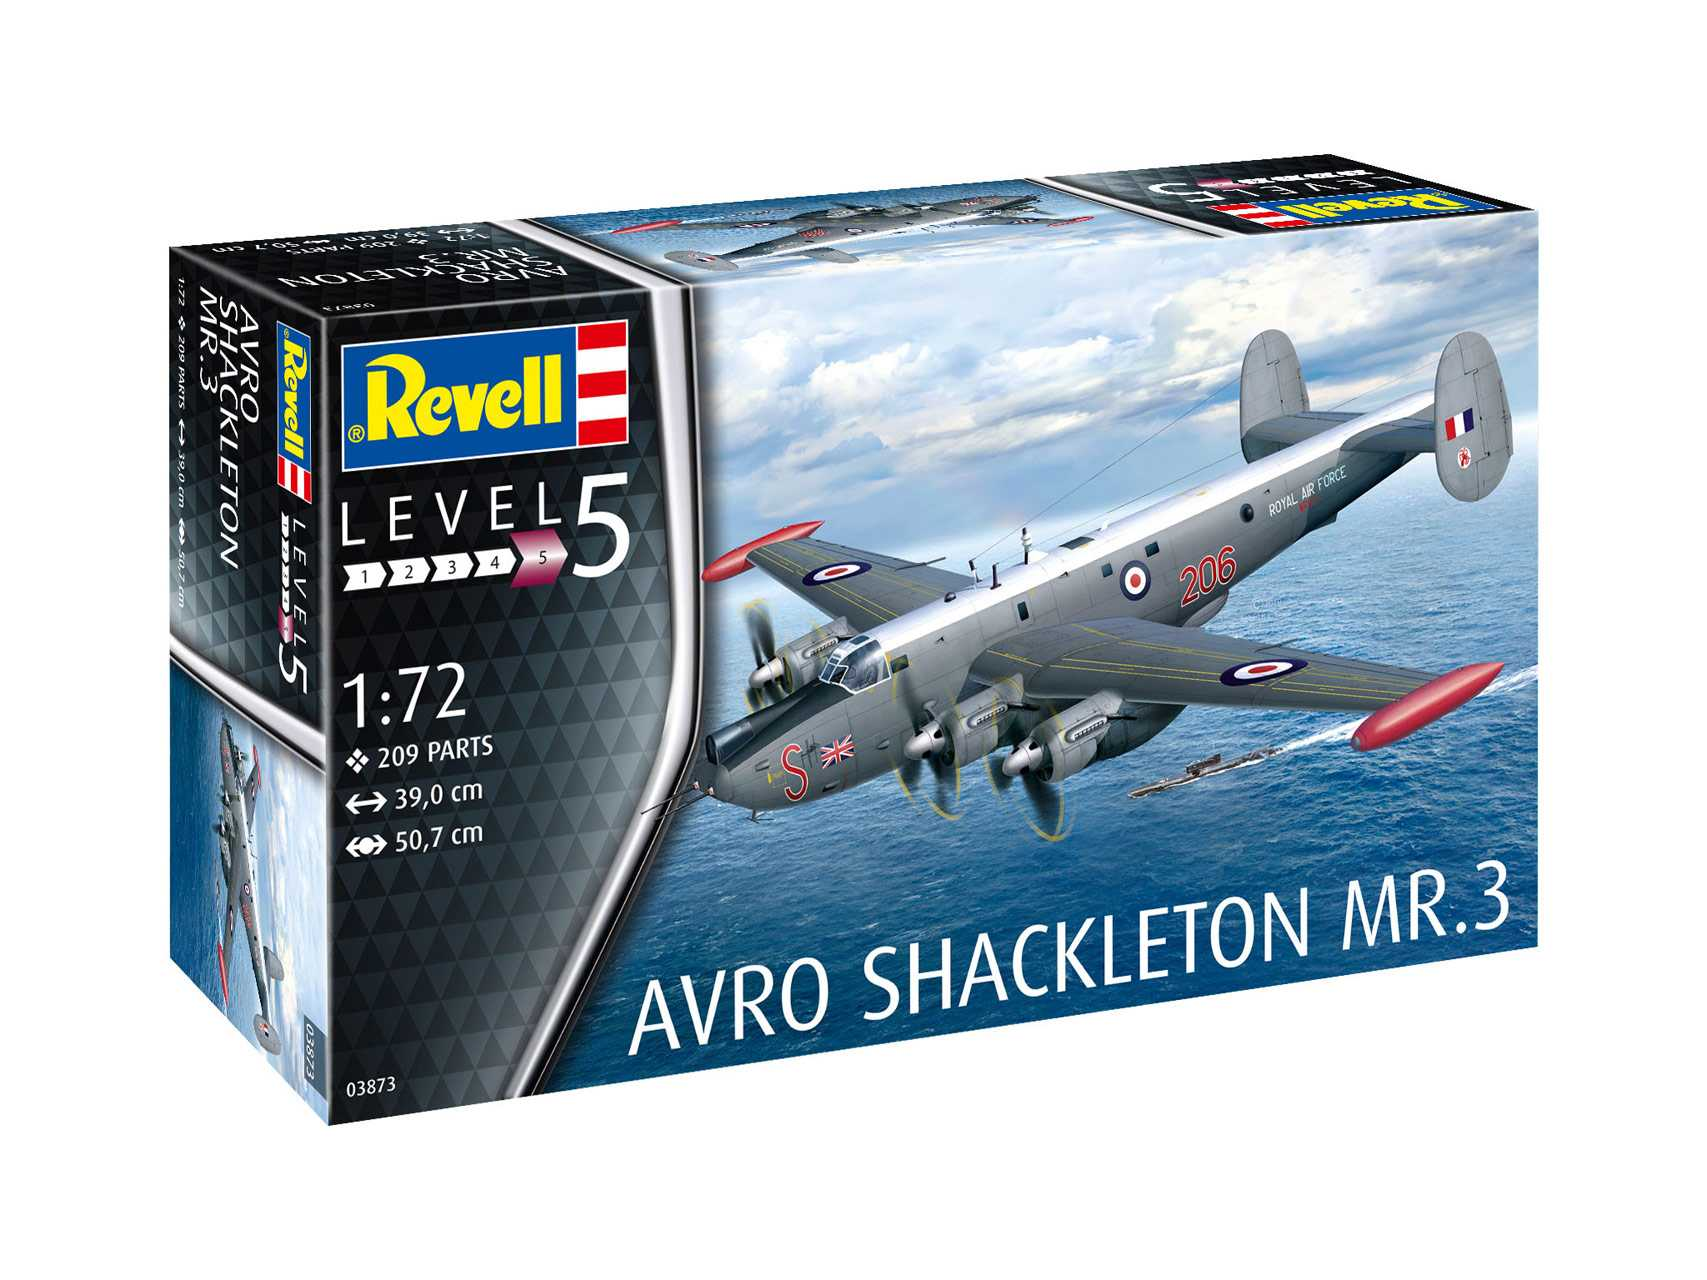 Náhled produktu - 1:72 Avro Shackleton MR.3